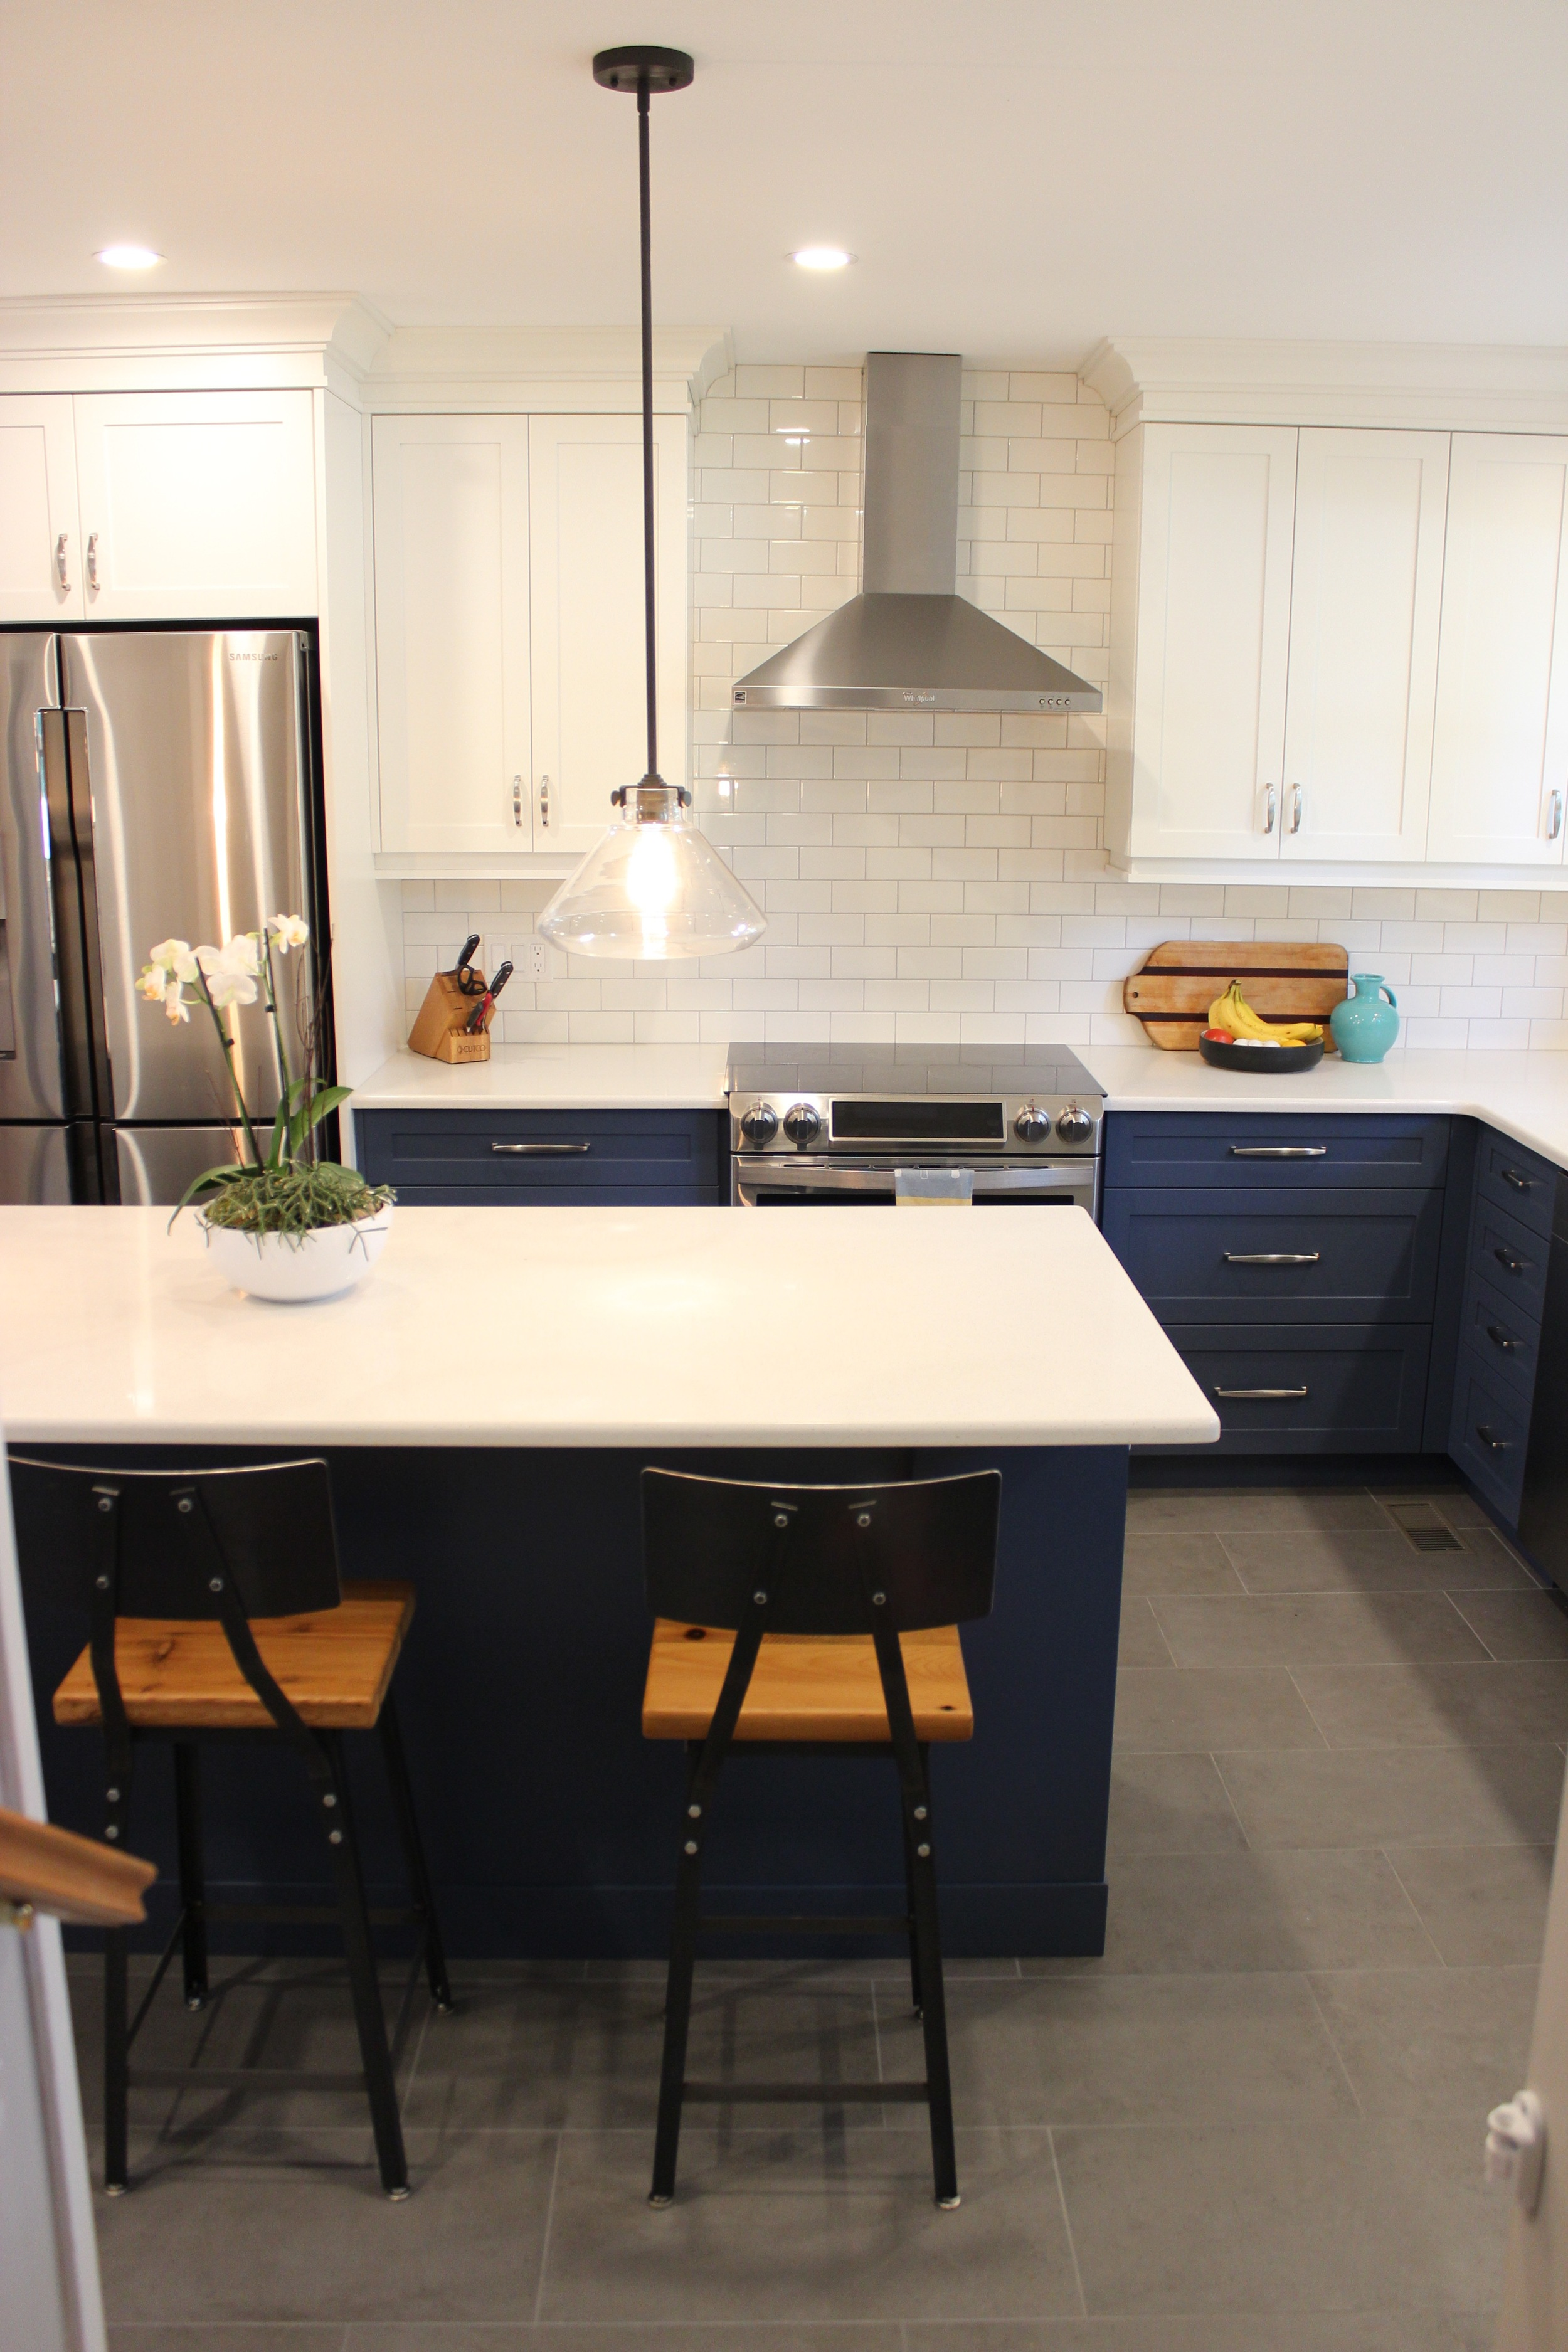 Stainless steel, white, blue, and natural wood work together nicely